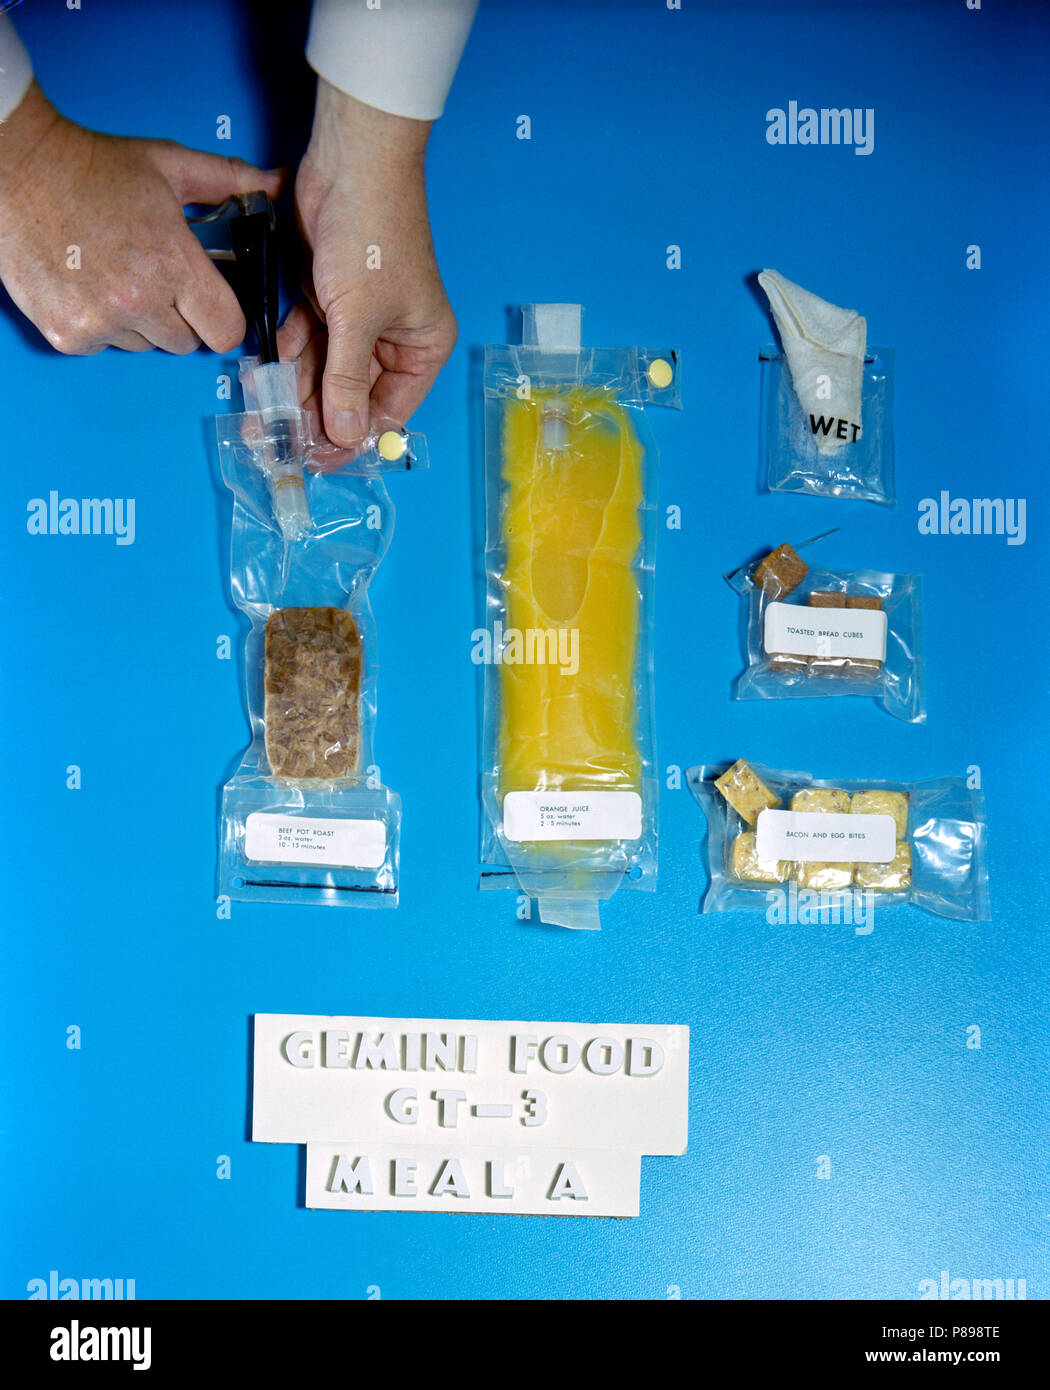 Food packets for use on the Gemini-3 flight including dehydrated beef pot roast, bacon and egg bites, toasted bread cubes, orange juice and a wet wipe - Stock Image